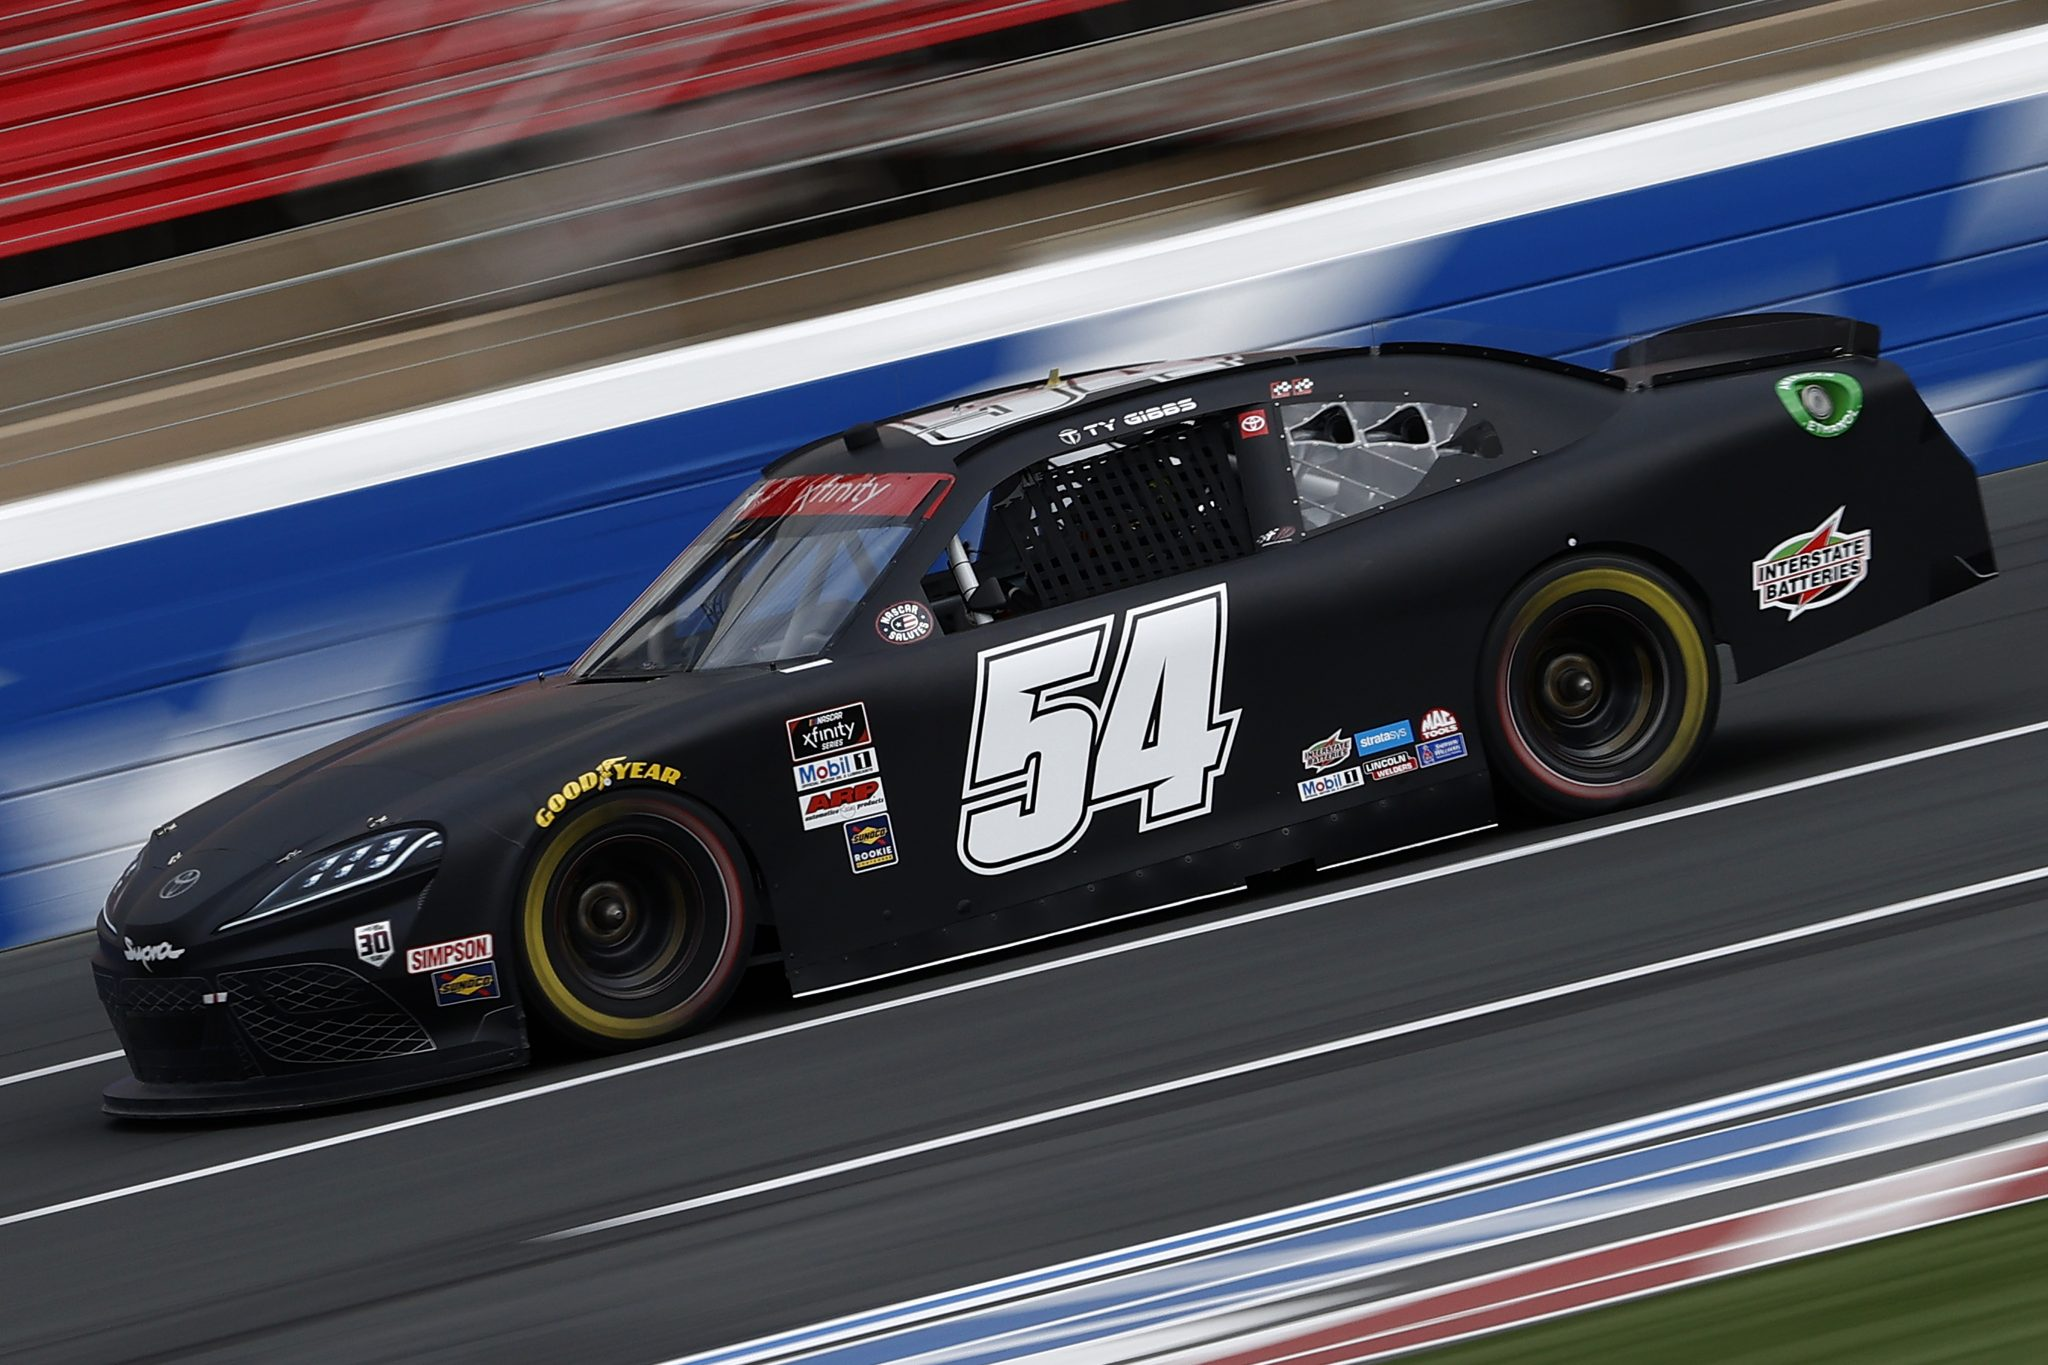 CONCORD, NORTH CAROLINA - MAY 28: Ty Gibbs, driver of the #54 Joe Gibbs Racing Toyota, drives during practice for the NASCAR Xfinity Series Alsco Uniforms 300 at Charlotte Motor Speedway on May 28, 2021 in Concord, North Carolina. (Photo by Maddie Meyer/Getty Images) | Getty Images